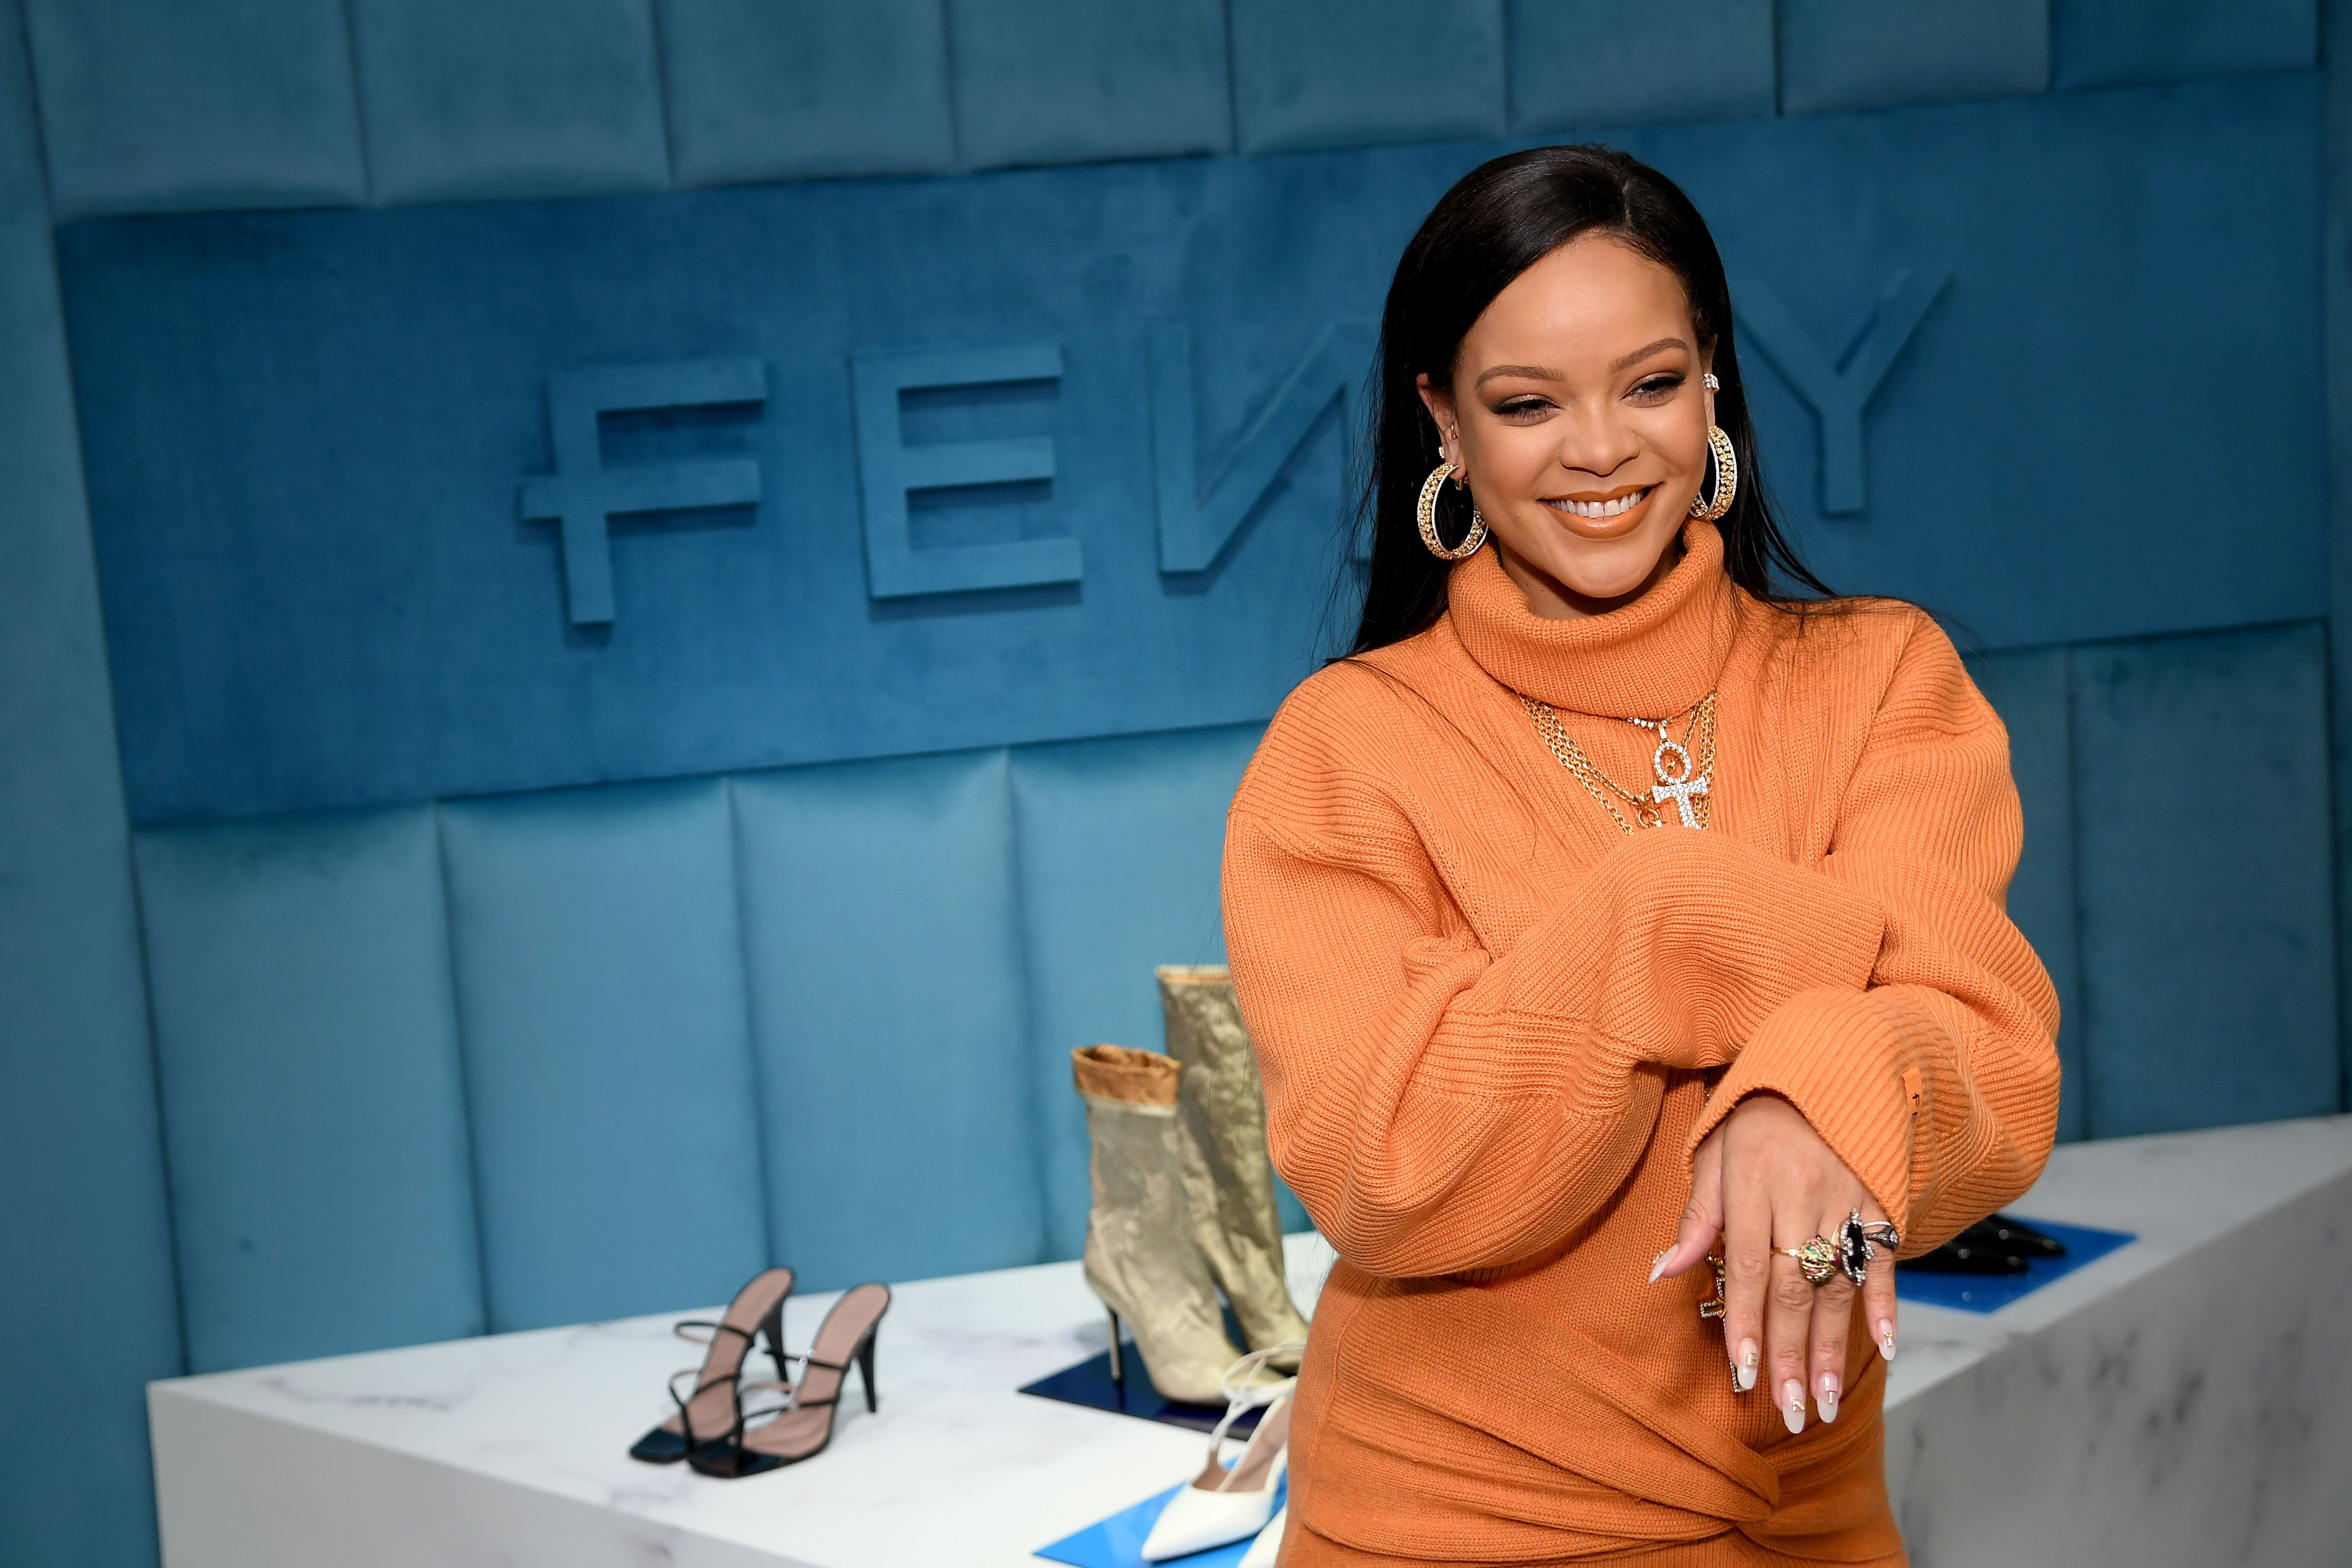 Rihanna promoting her Fenty makeup line.